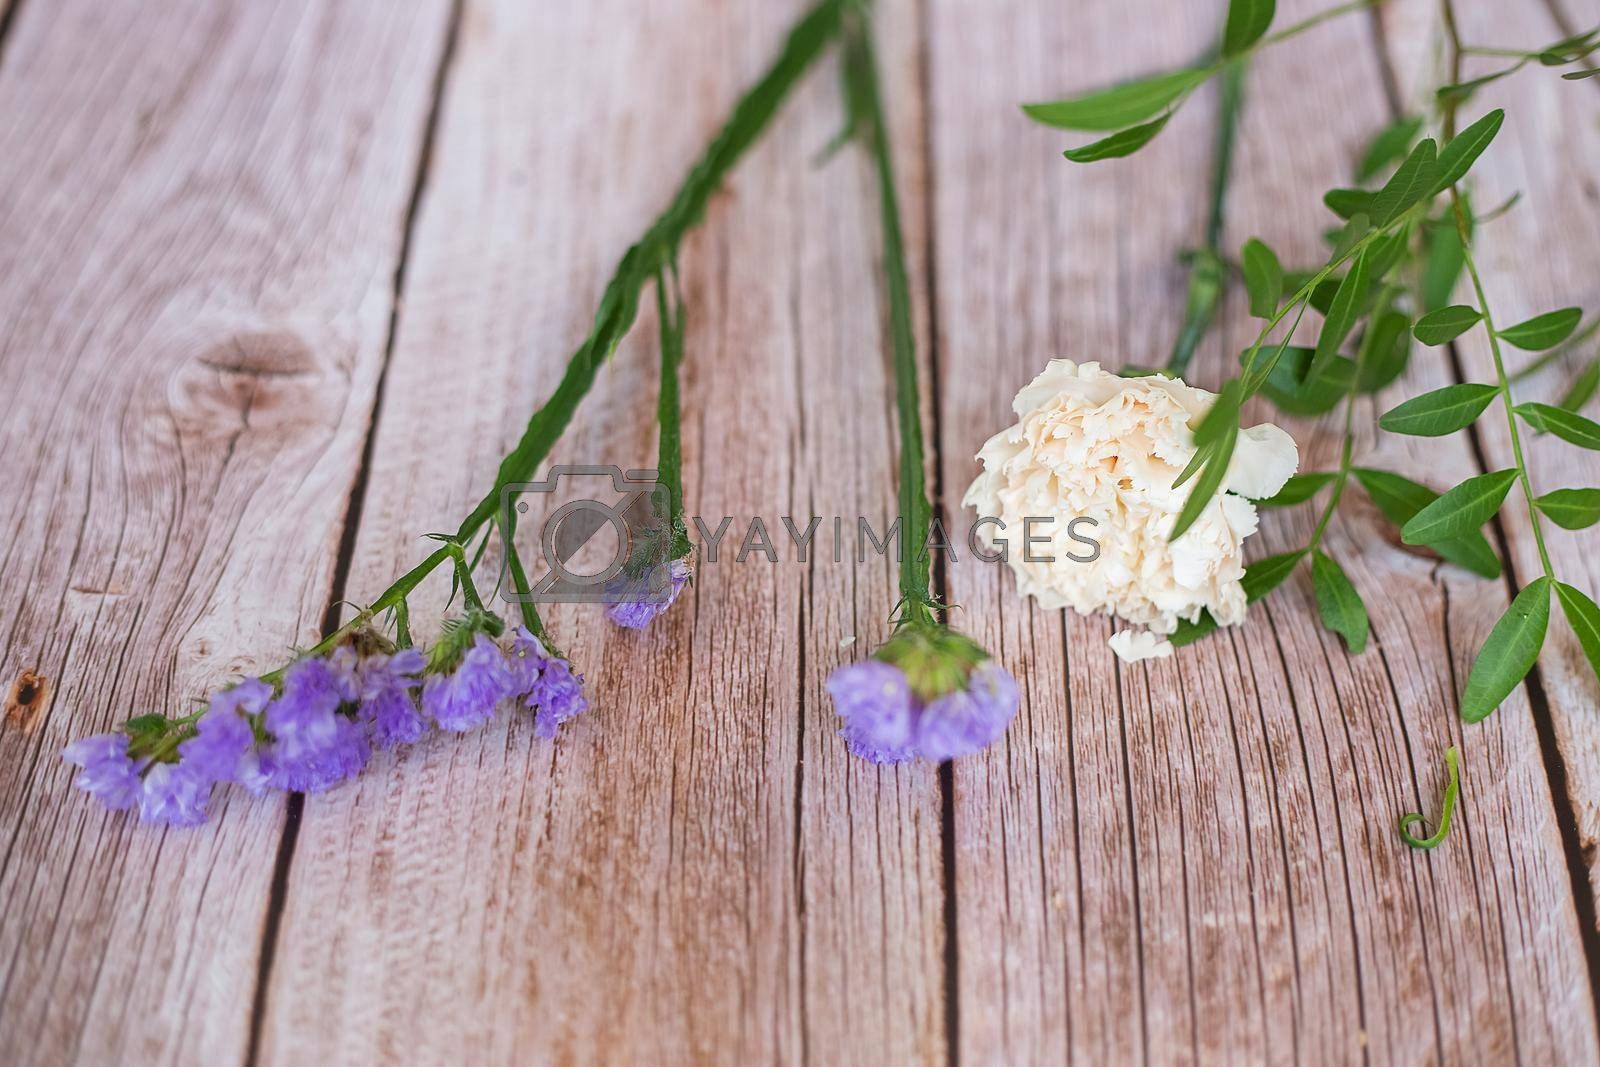 The florist desktop on light wooden background with place for text.